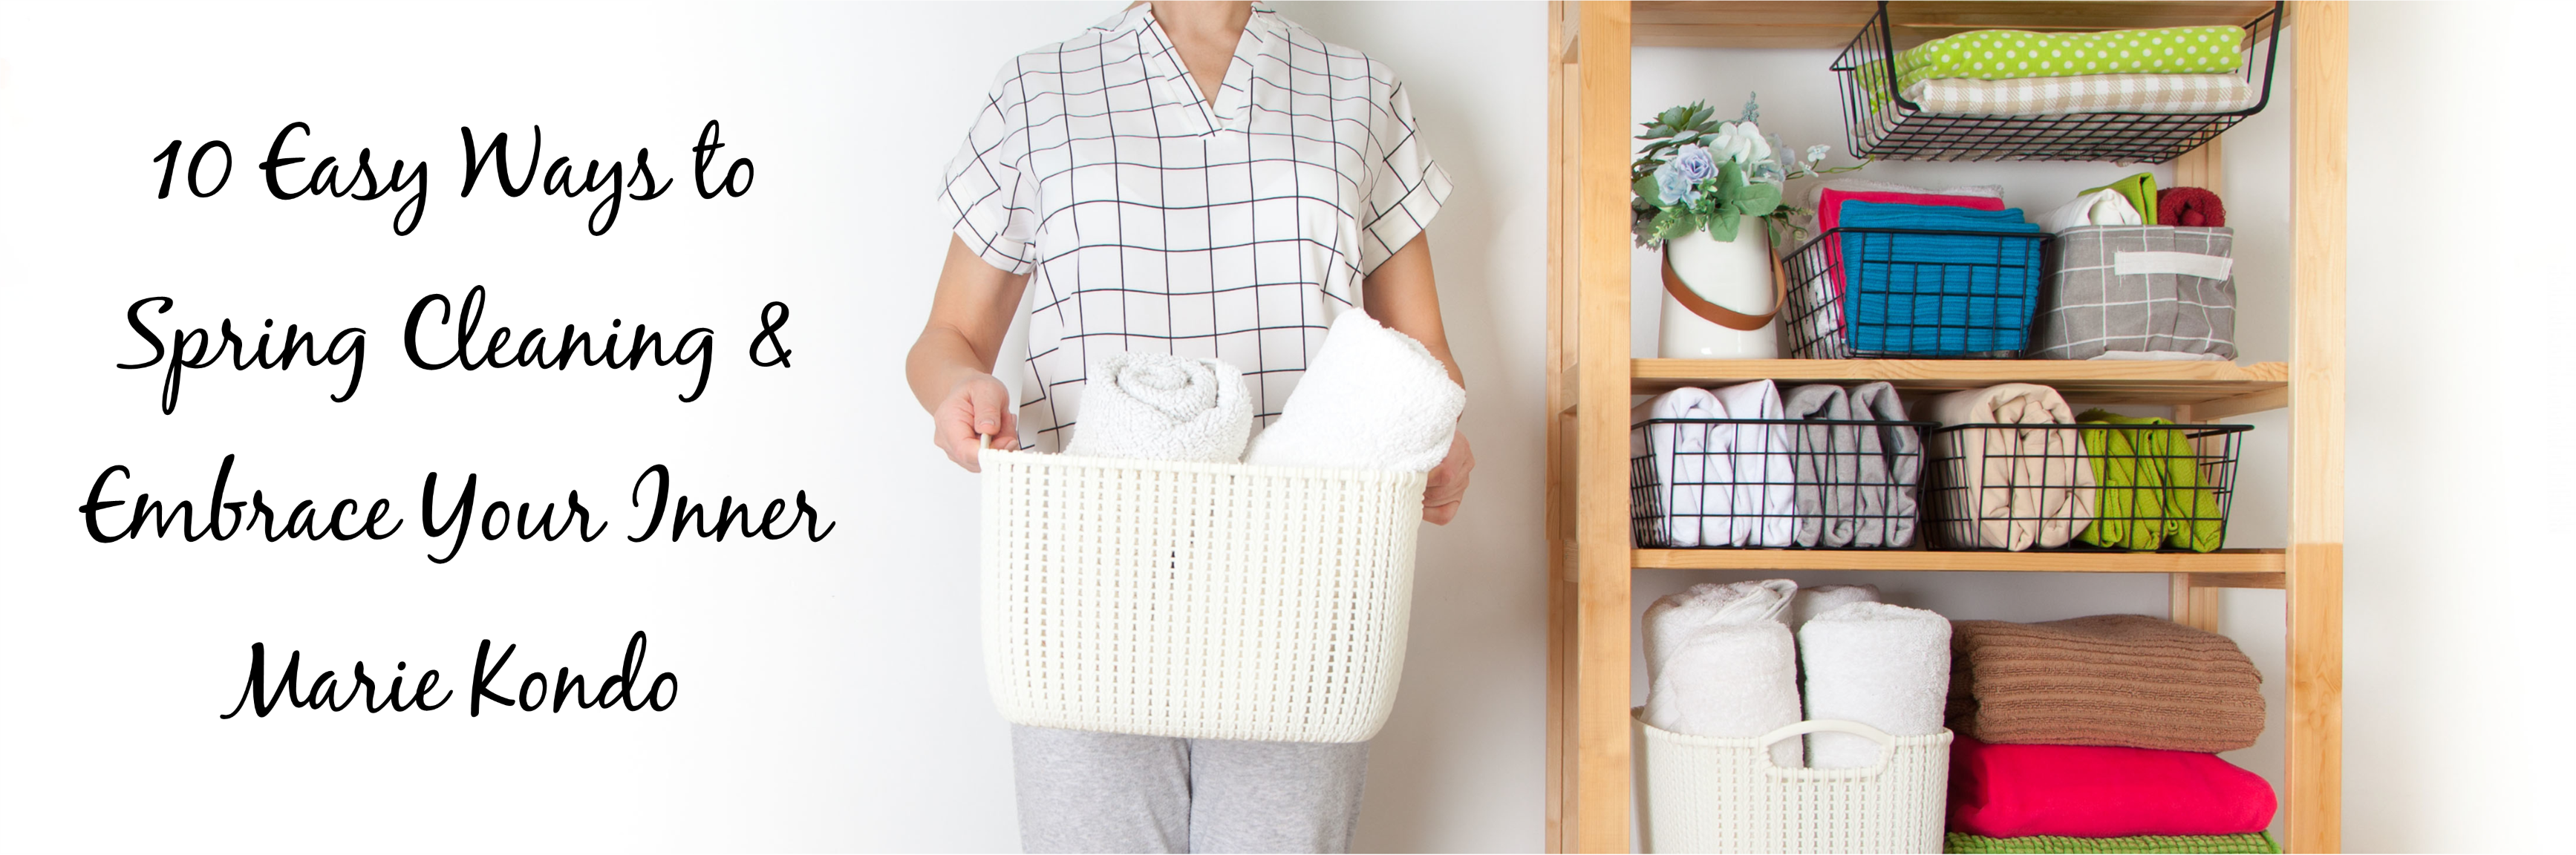 10 Easy Ways to Spring Cleaning and Embrace Your Inner Marie Kondo